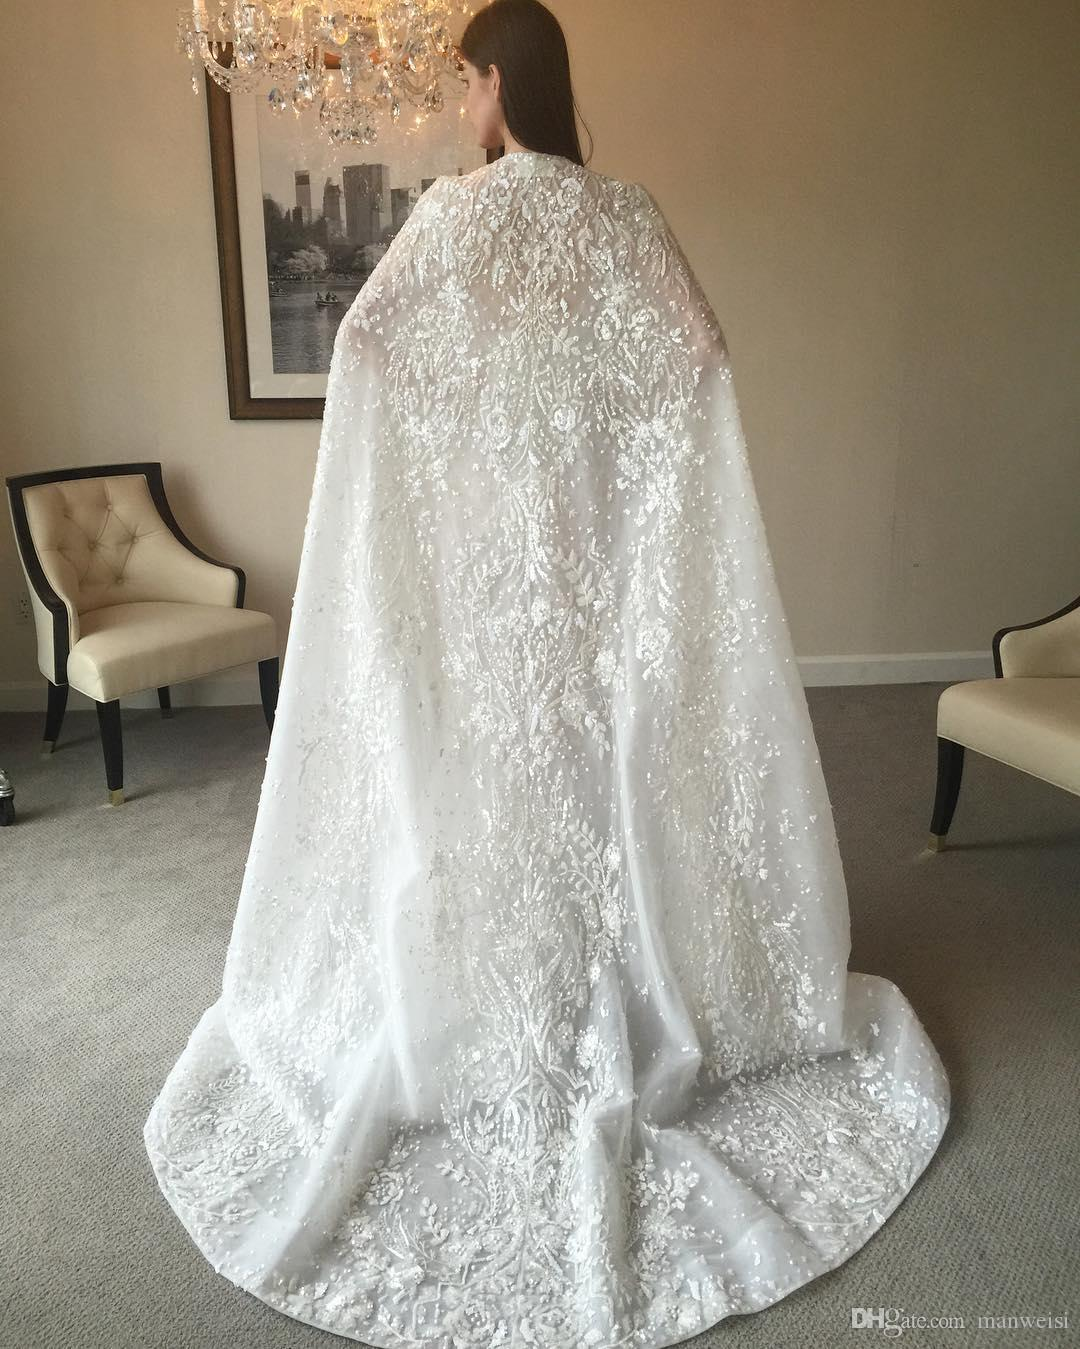 Luxury 2017 Zuhair Murad Mermaid Wedding Dresses Cowl Backs Beaded Applique Trumpet Bridal Gowns Sexy Illusion Bodice Wedding Dress